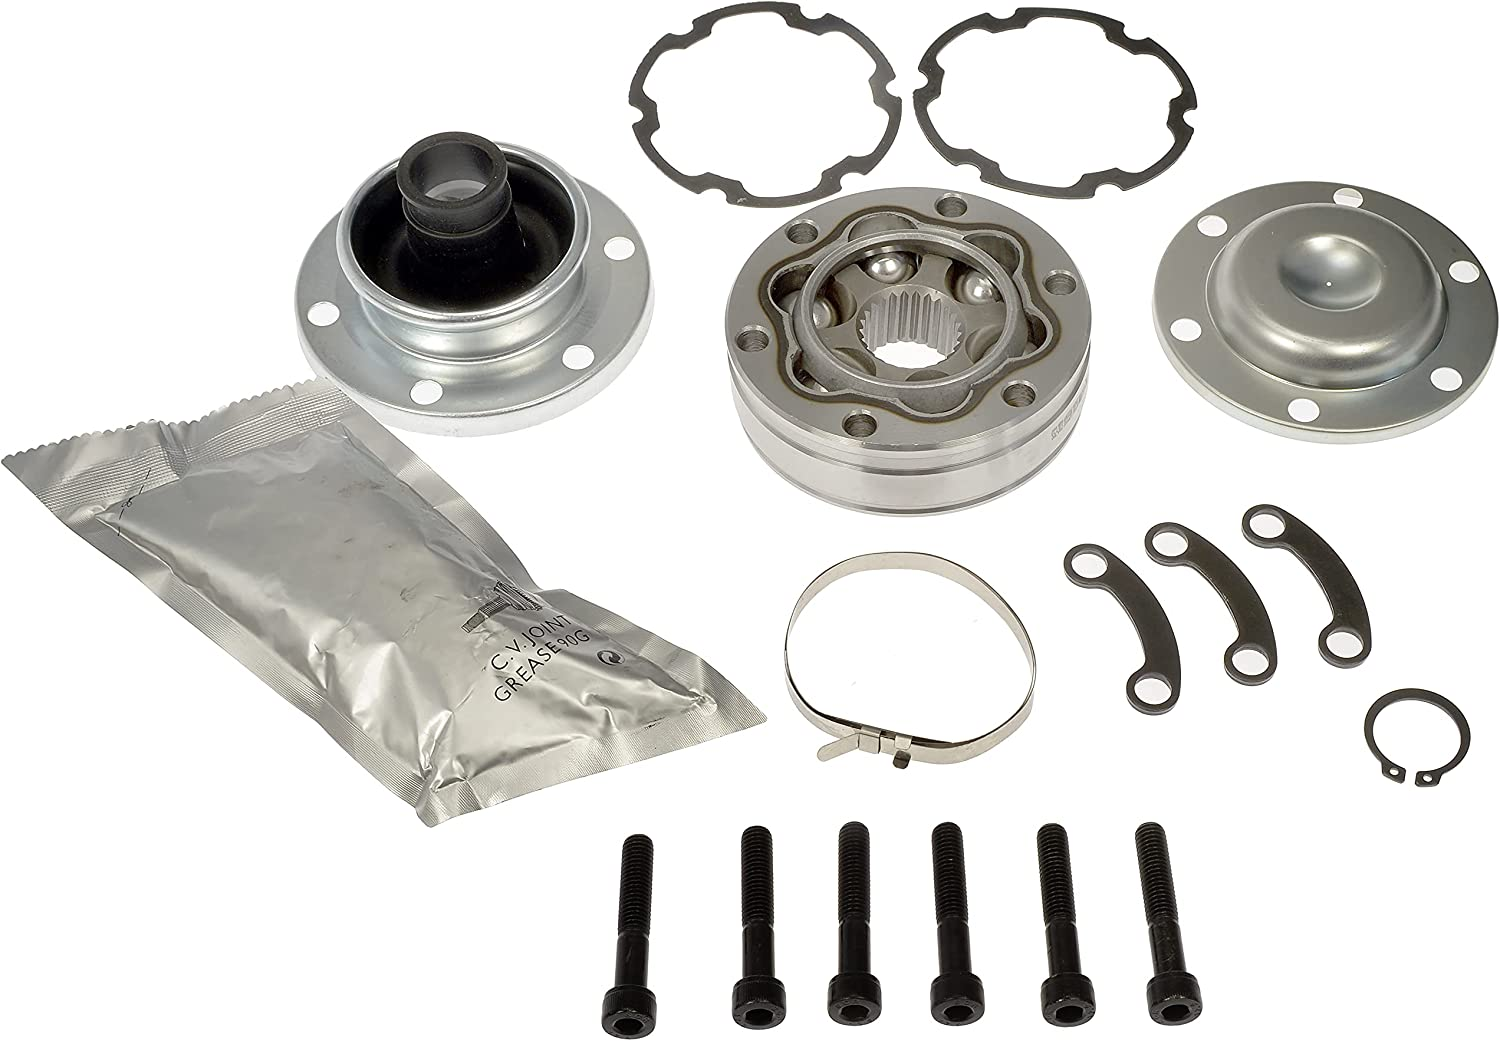 Seasonal At the price Wrap Introduction Dorman 932-303 Front Drive Shaft CV Dodge Select Jee Joint for